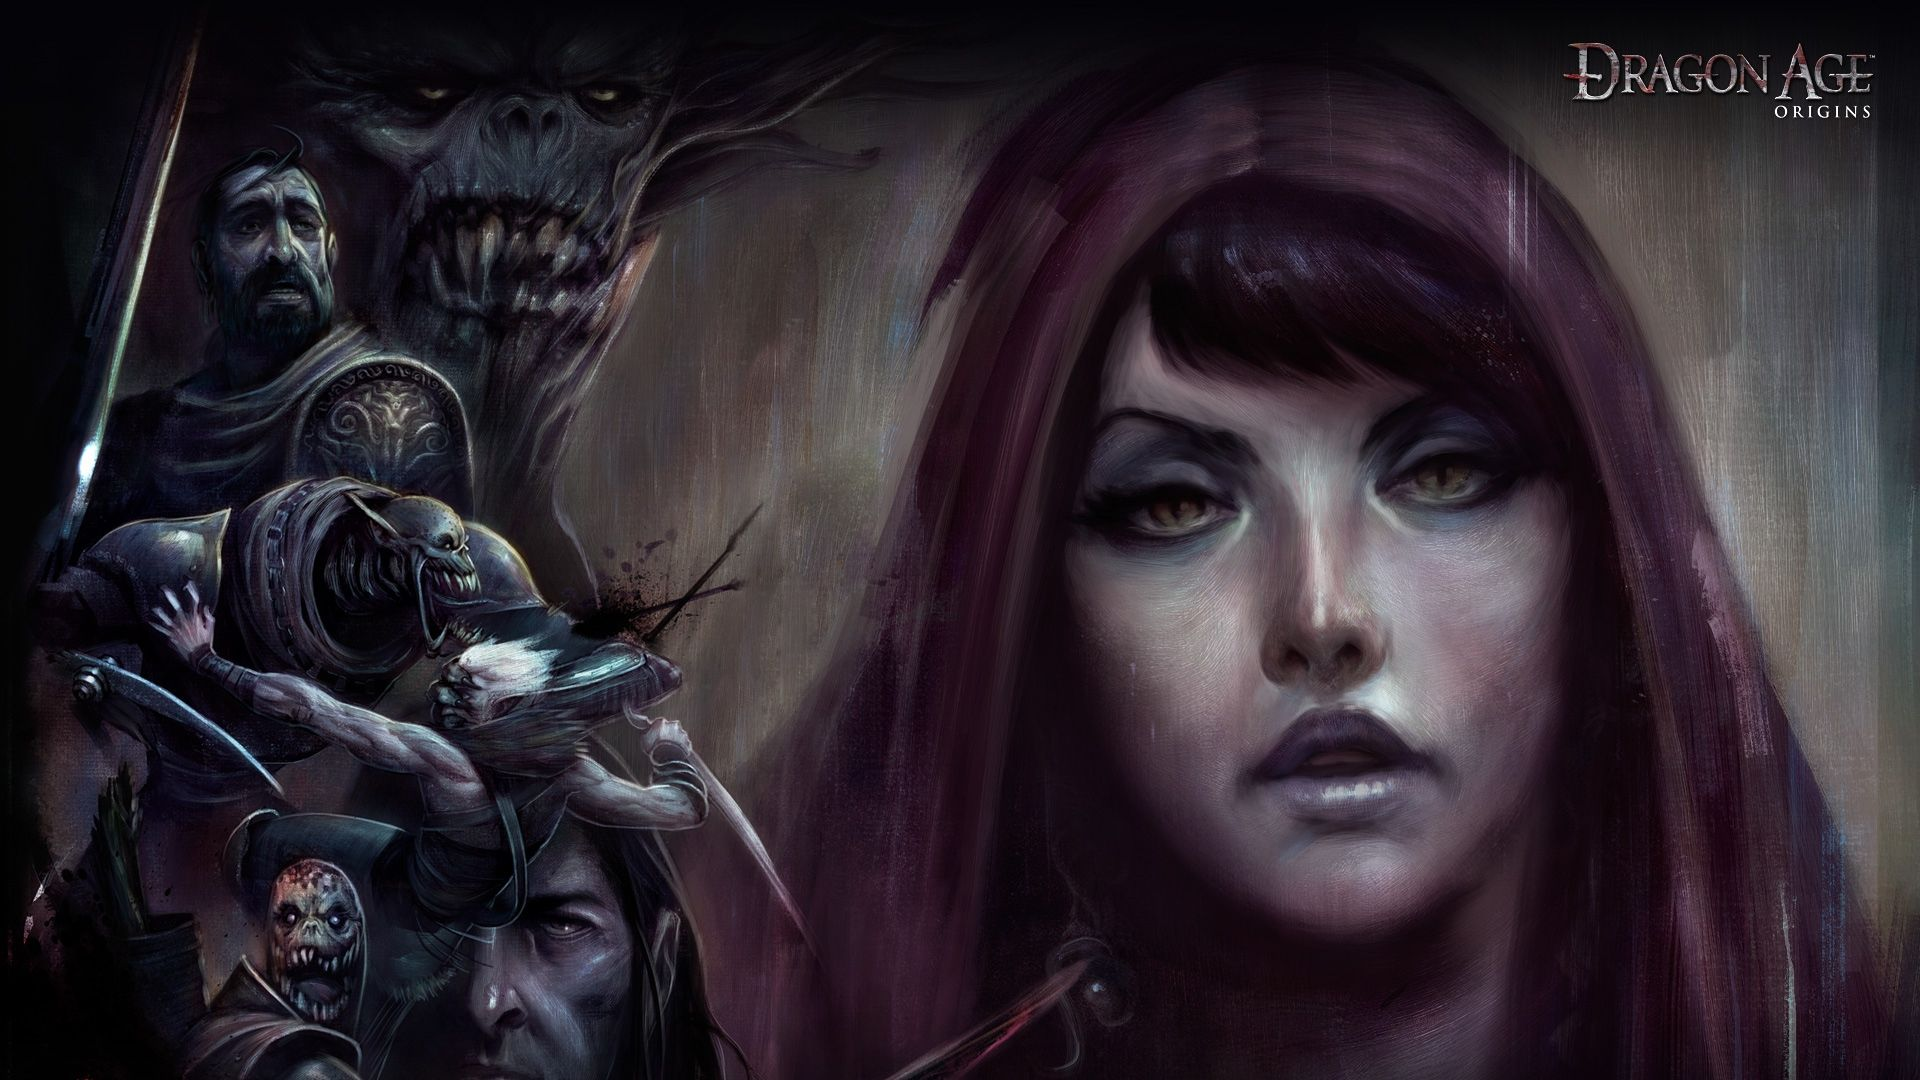 stunning dragon age origins girl face look monsters wallpaper